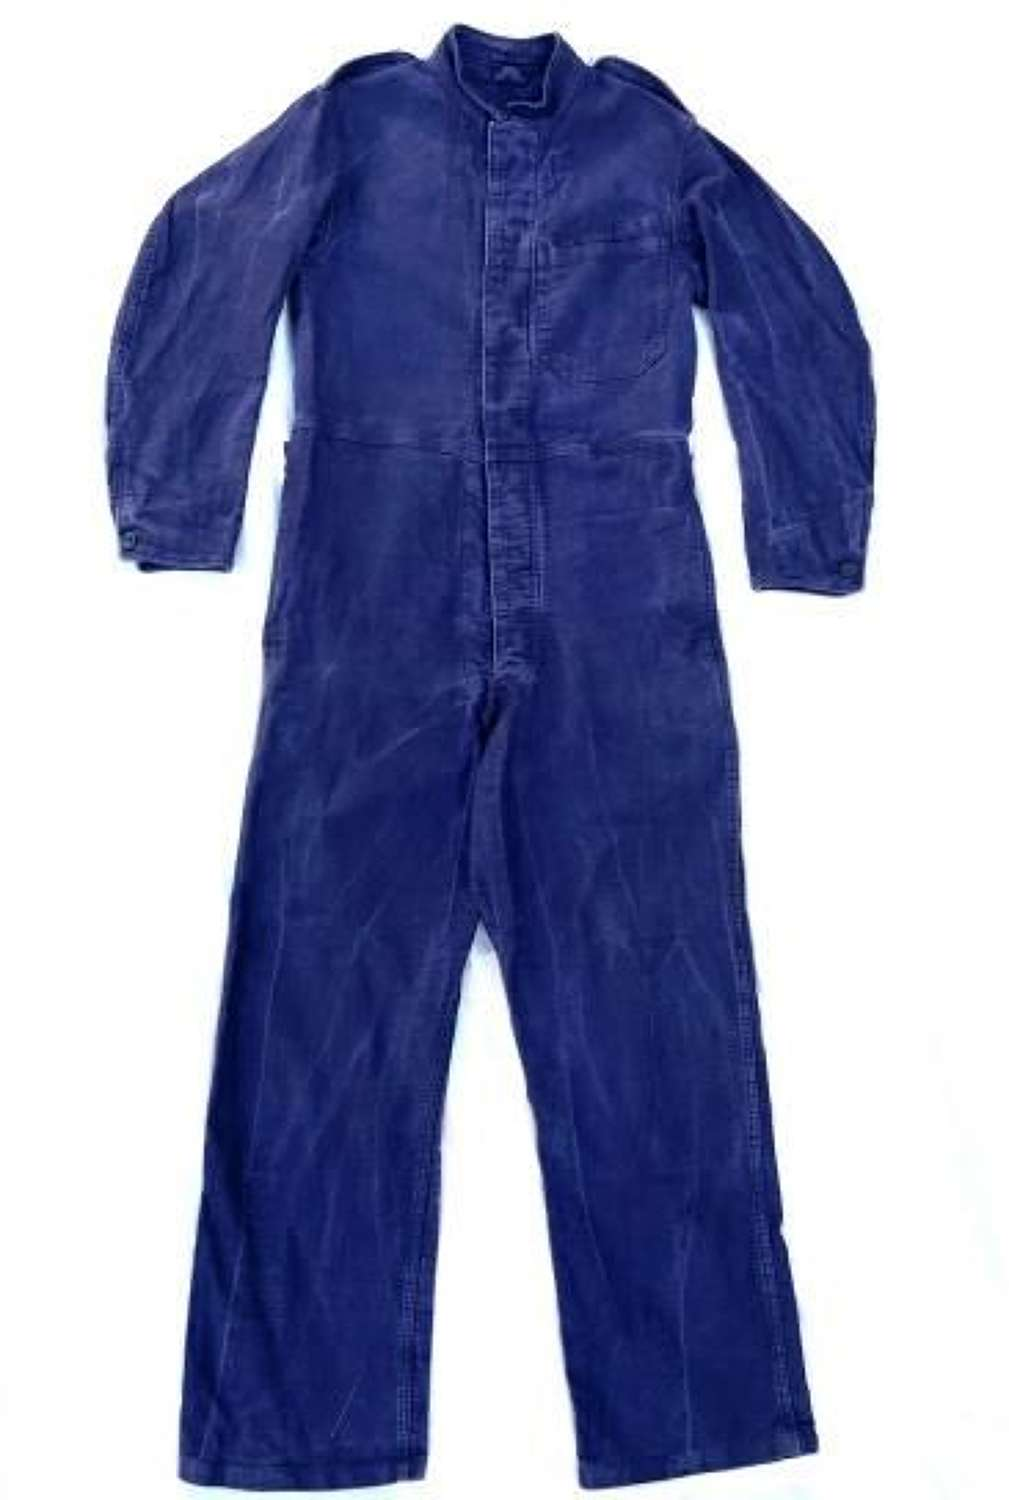 Original 1953 Dated Civil Defence Overalls